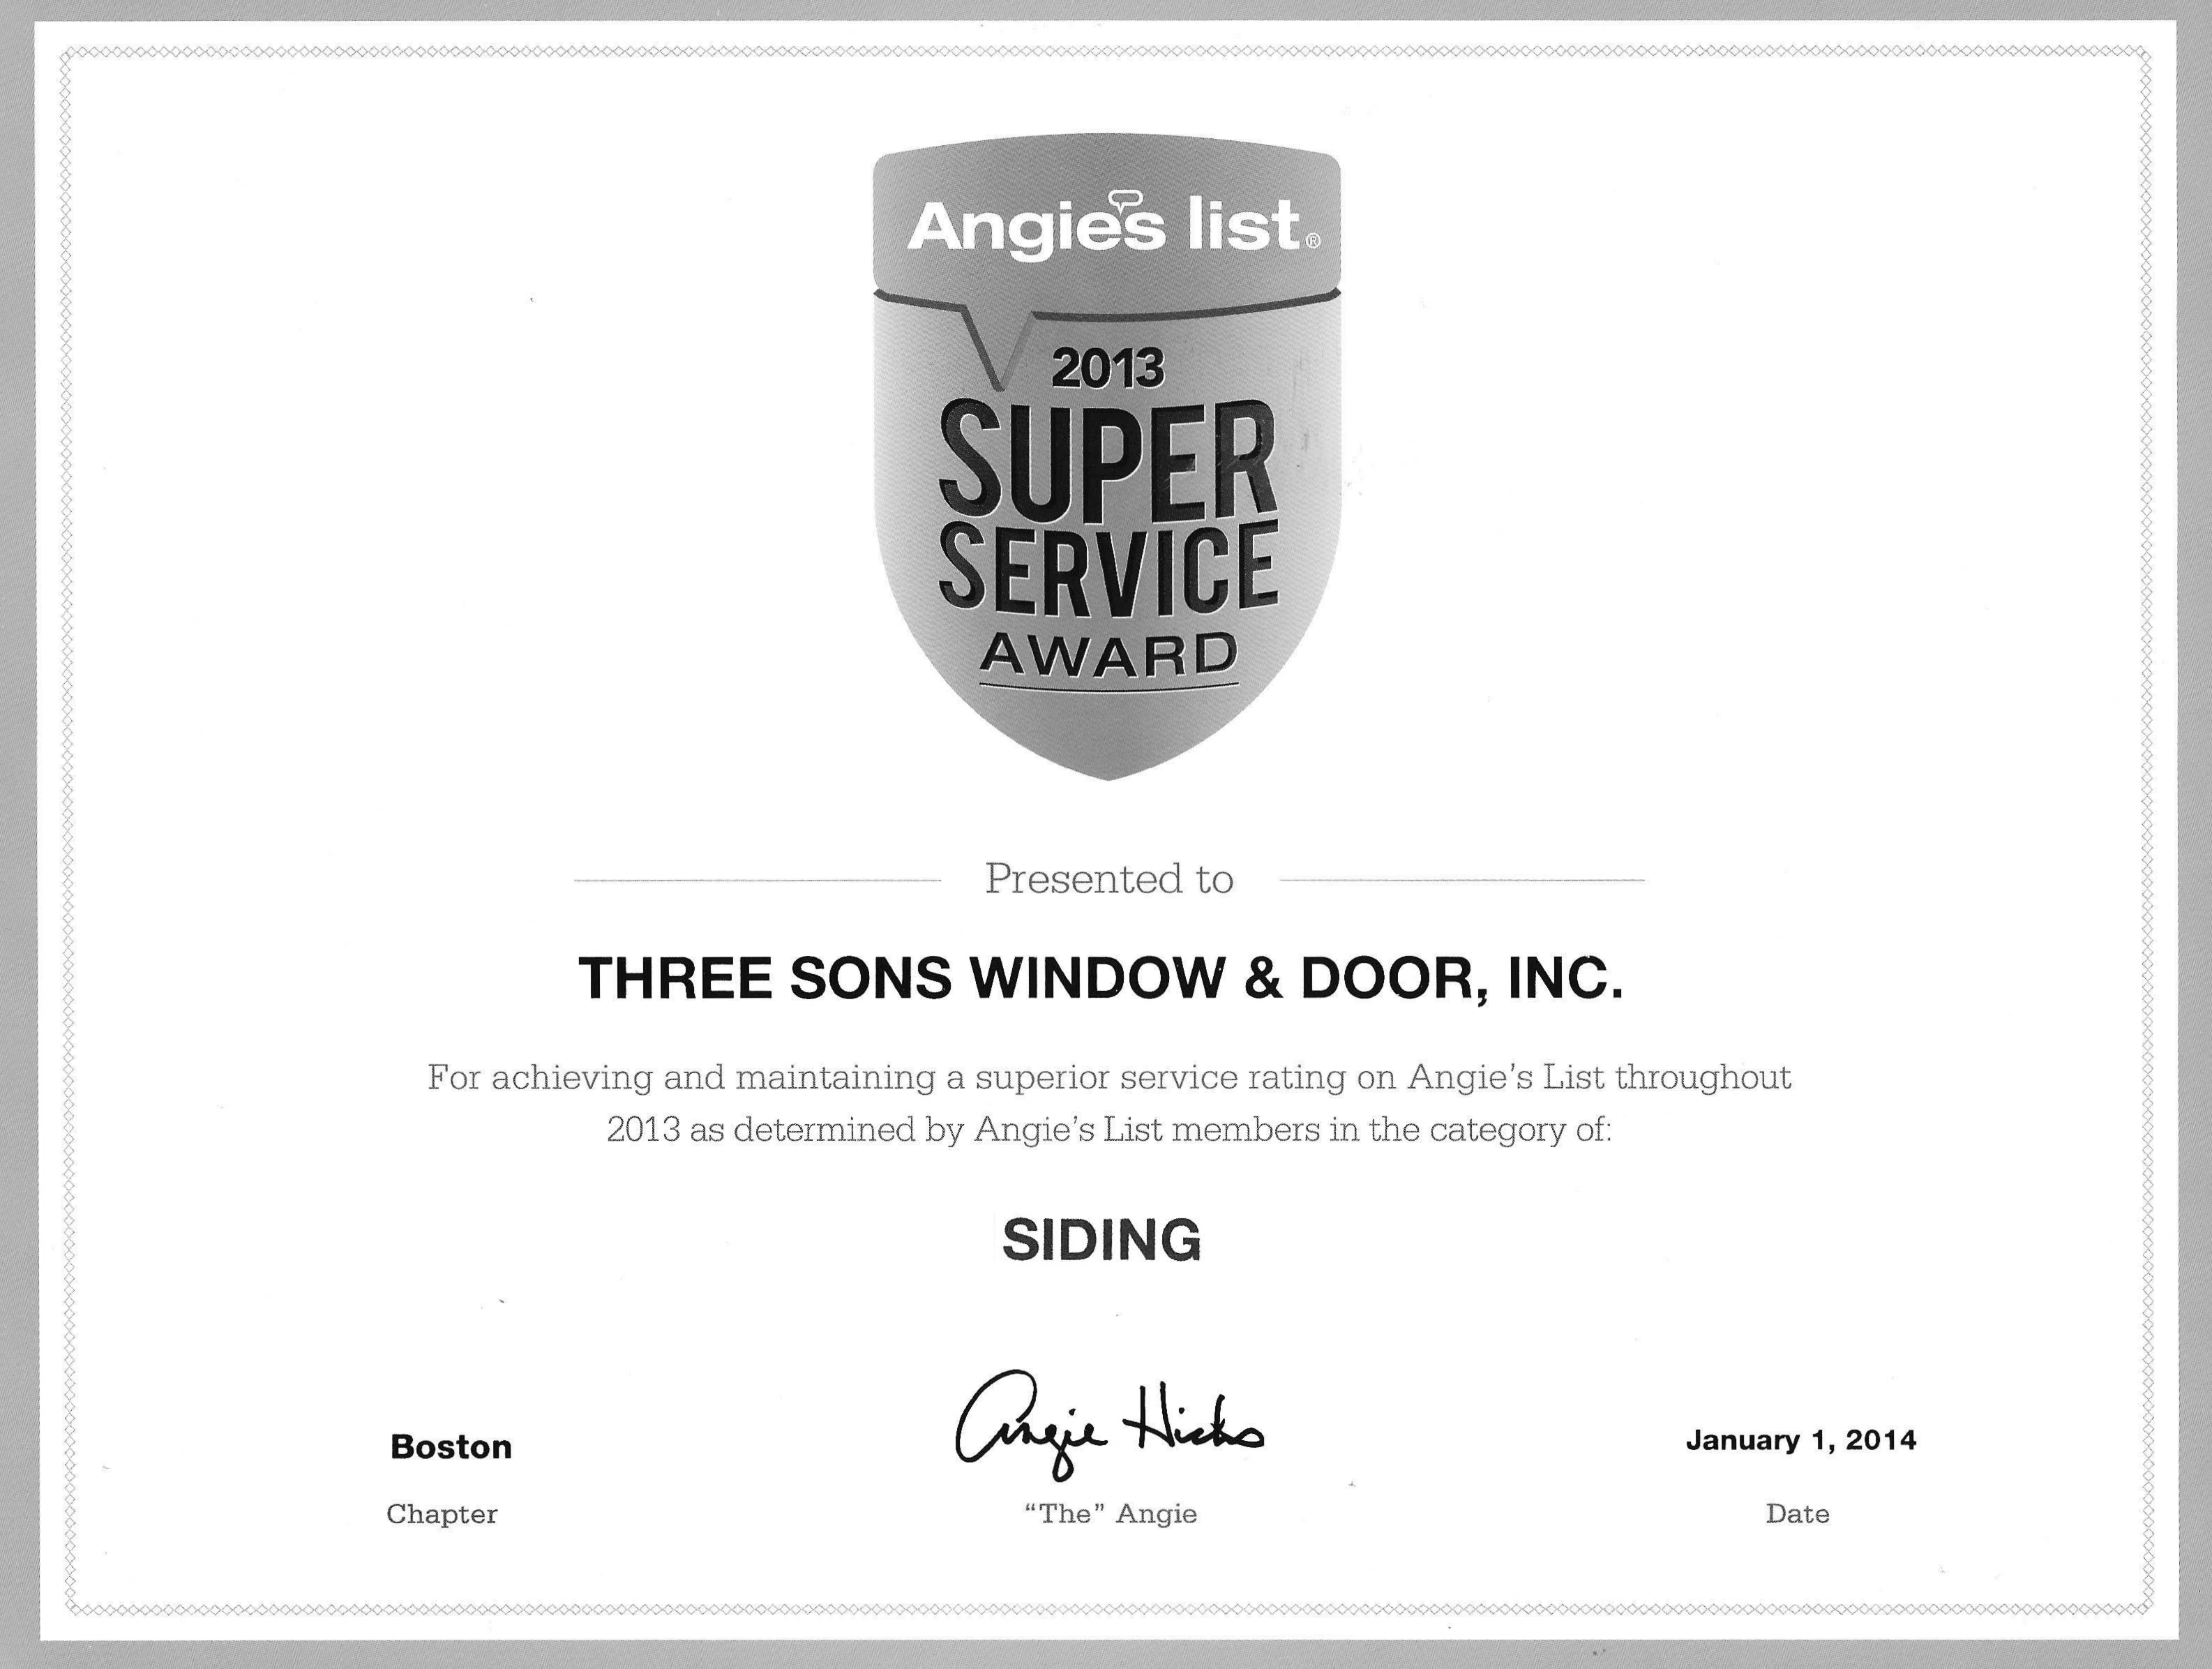 angies list 2013 - siding